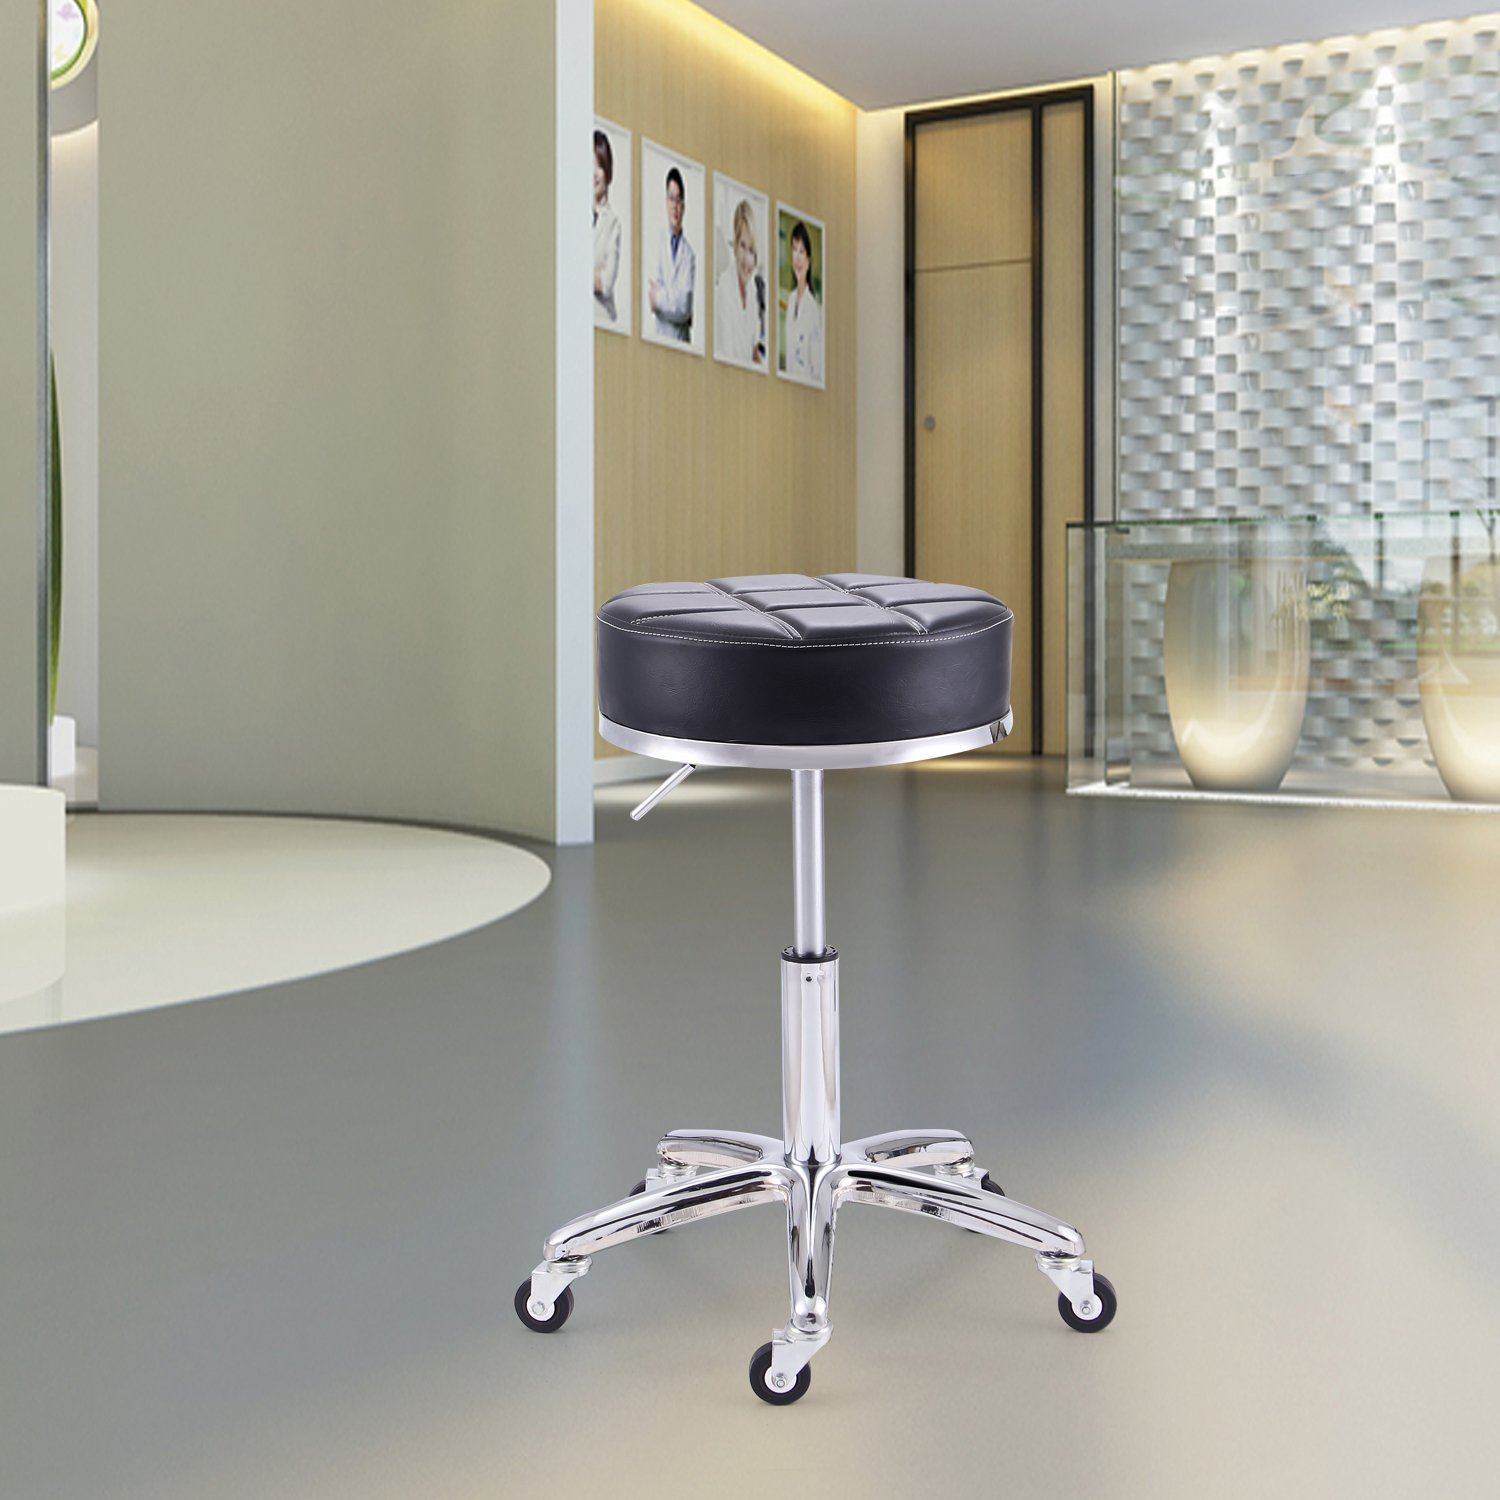 Rfiver Modern PU Leather Relief Hydraulic Adjustable Swivel Drafting Stool Chair for Salon Spa Massage Kitchen Office Shop Club Bar in Black SC1004-1 by Rfiver (Image #7)